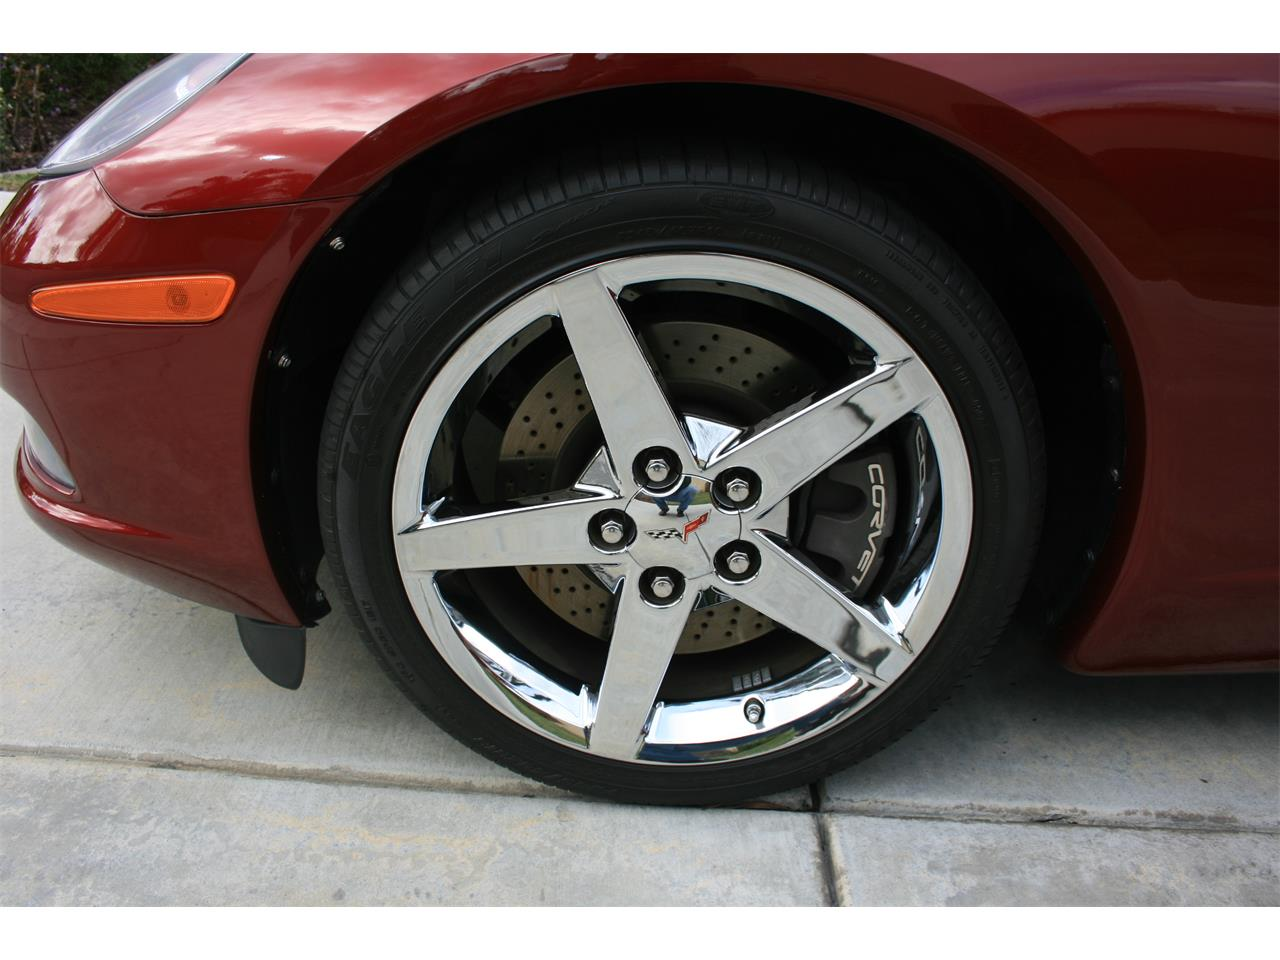 Large Picture of '07 Chevrolet Corvette located in VISTA California - $23,500.00 Offered by a Private Seller - PDX2